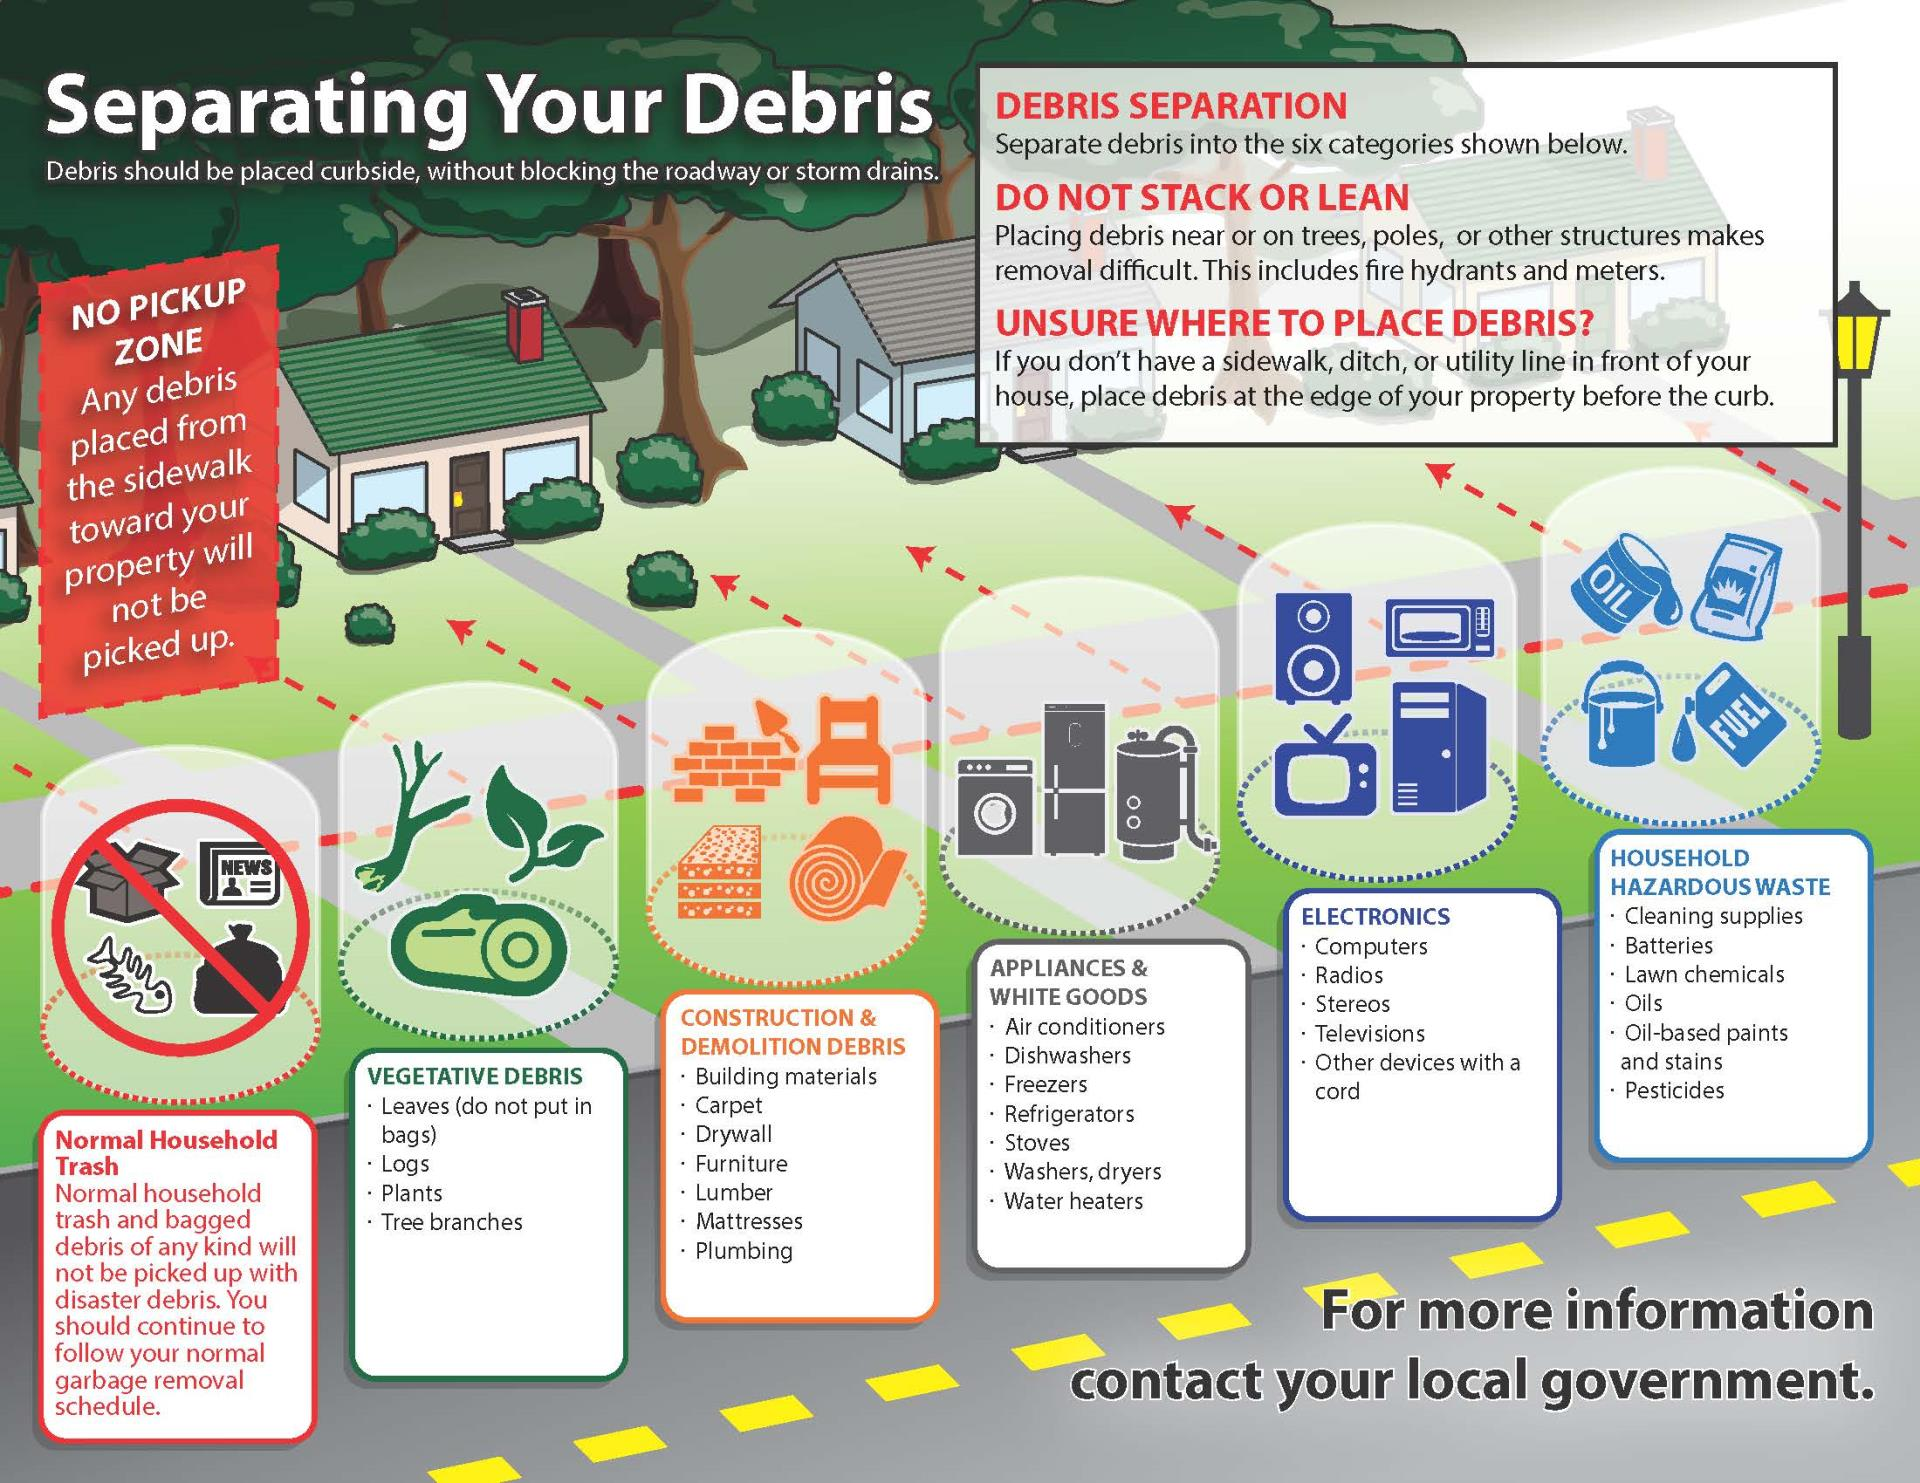 Graphic depicting debris separation and to place it between the street and sidewalk of your property